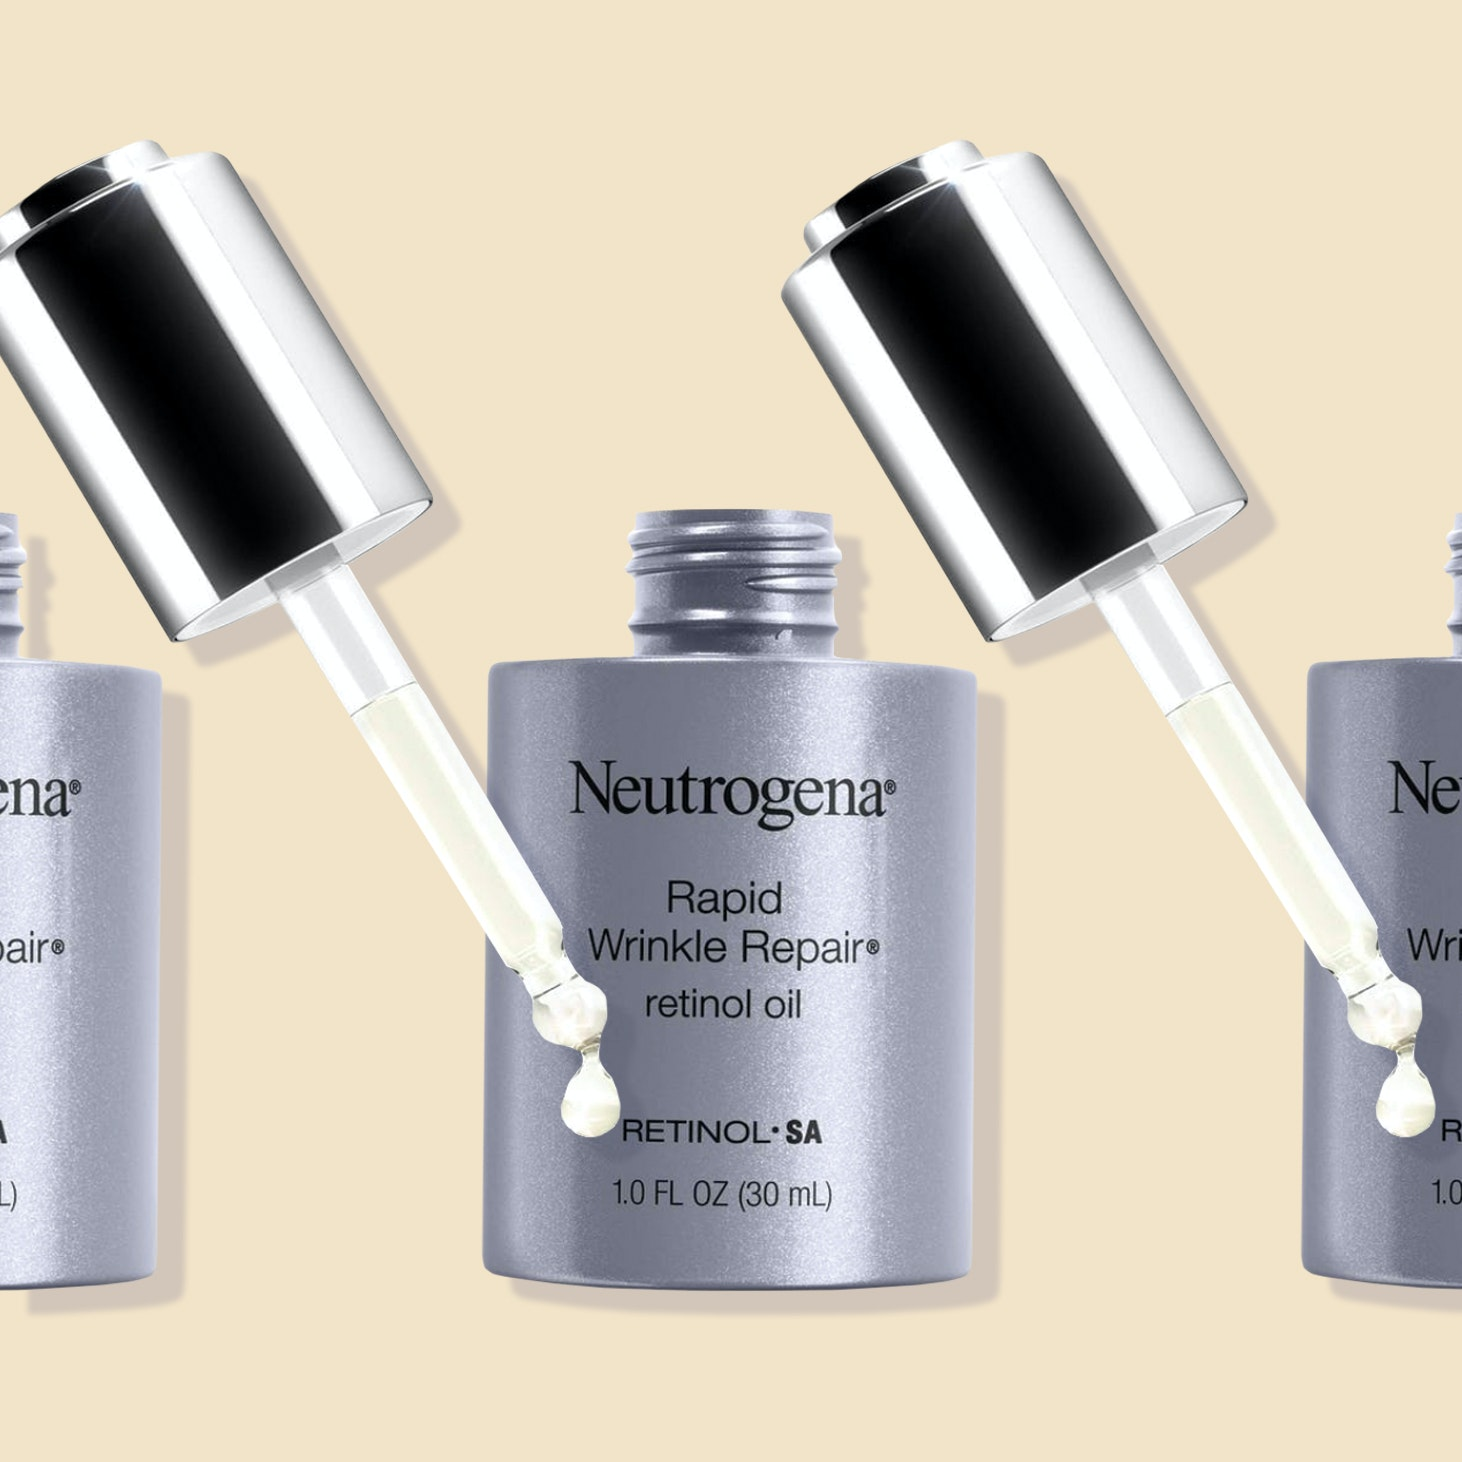 This Neutrogena Retinol Oil Promises Results In One Week — Here's My Honest Review